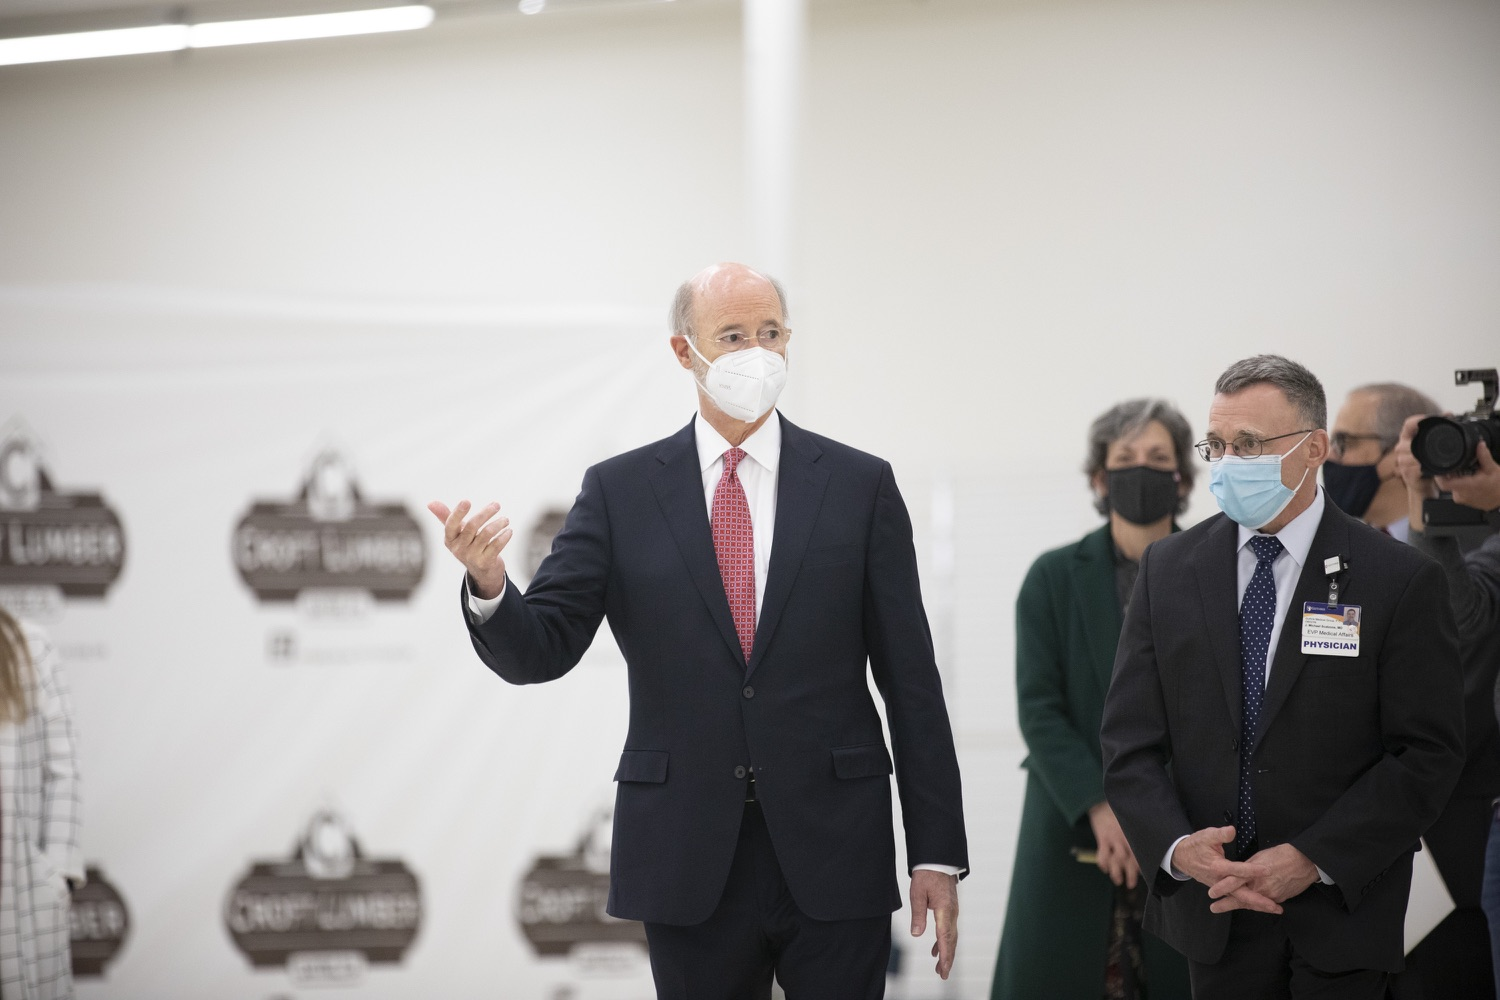 """<a href=""""https://filesource.wostreaming.net/commonwealthofpa/photo/18682_gov_vaccineClinic_dz_019.jpg"""" target=""""_blank"""">⇣Download Photo<br></a>Pennsylvania Governor Tom Wolf touring the regional vaccination clinic with Dr. J. Michael Scalzone, MD.  Governor Tom Wolf today visited the Guthrie Health vaccine clinic in Sayre, Bradford County today to tour this clinic providing vaccines to a large swath of rural residents and to talk about progress in vaccinating Pennsylvanians now that eligibility is open to all individuals age 16 and older.  Sayre, PA   April 21, 2021"""